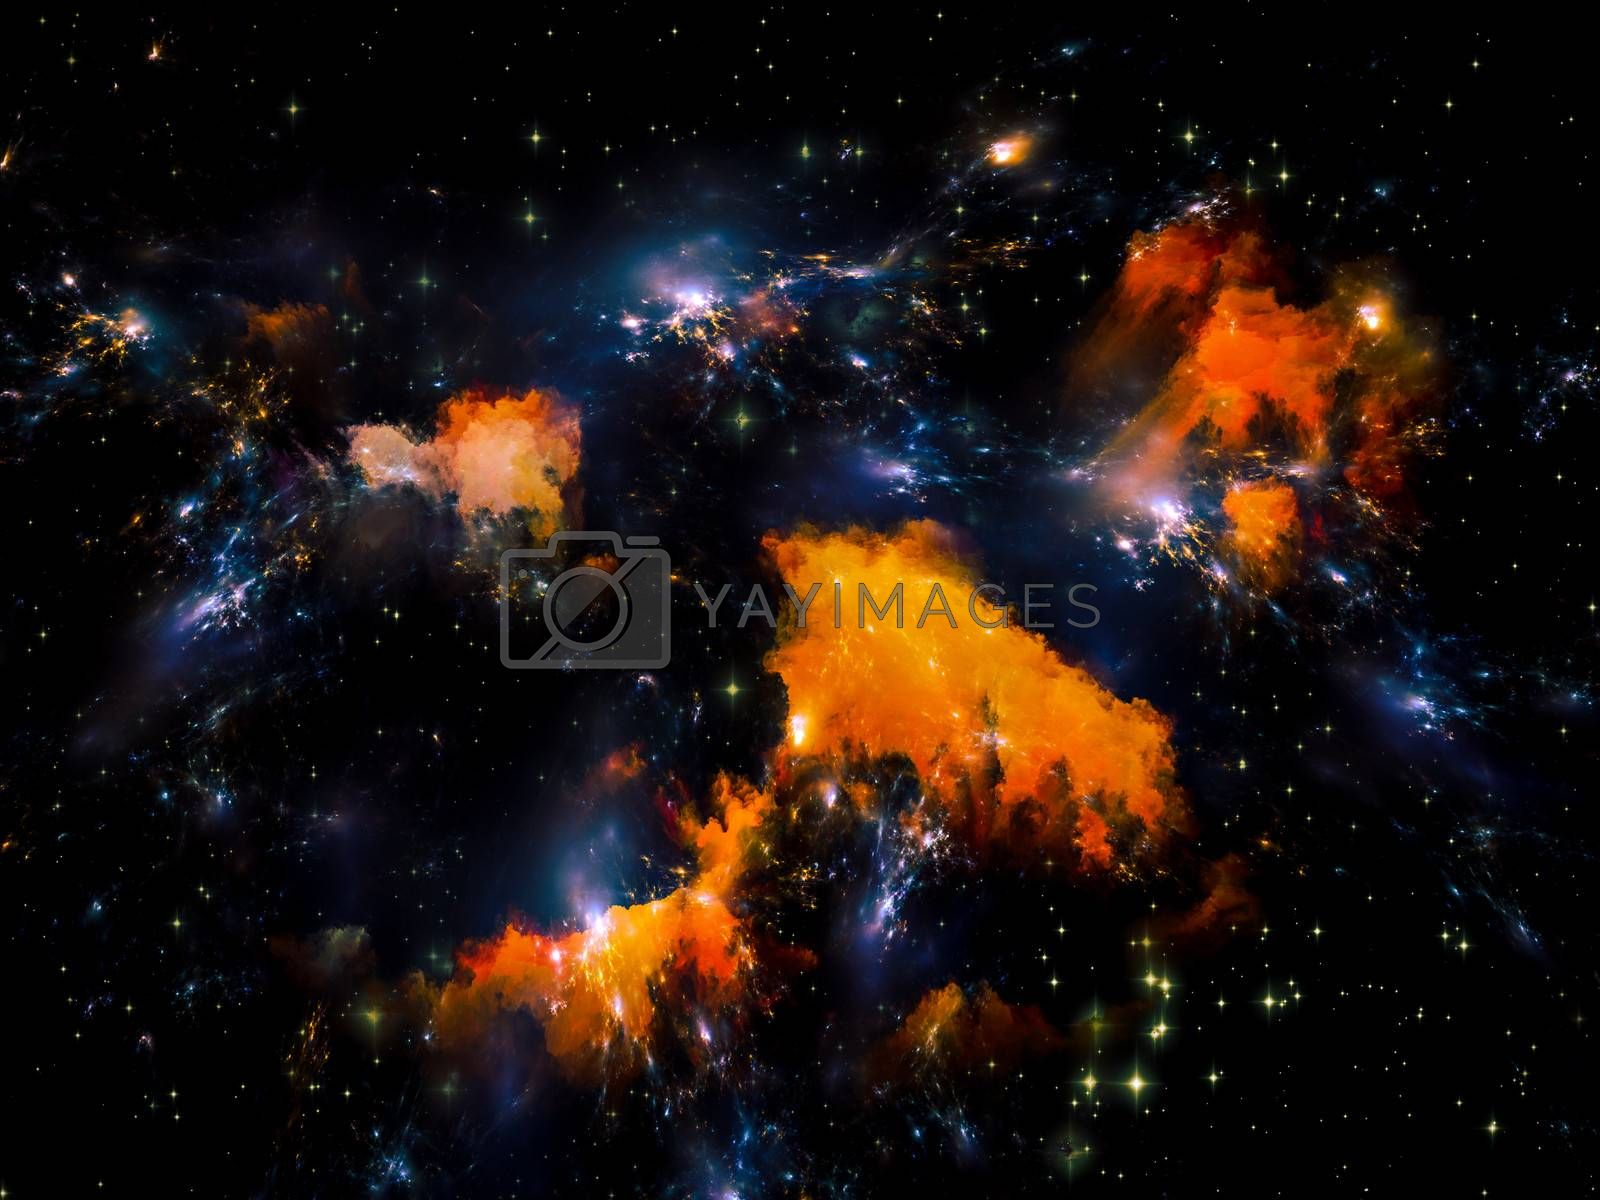 Universe Is Not Enough series. Artistic abstraction composed of fractal elements, lights and textures on the subject of fantasy, science, religion and design